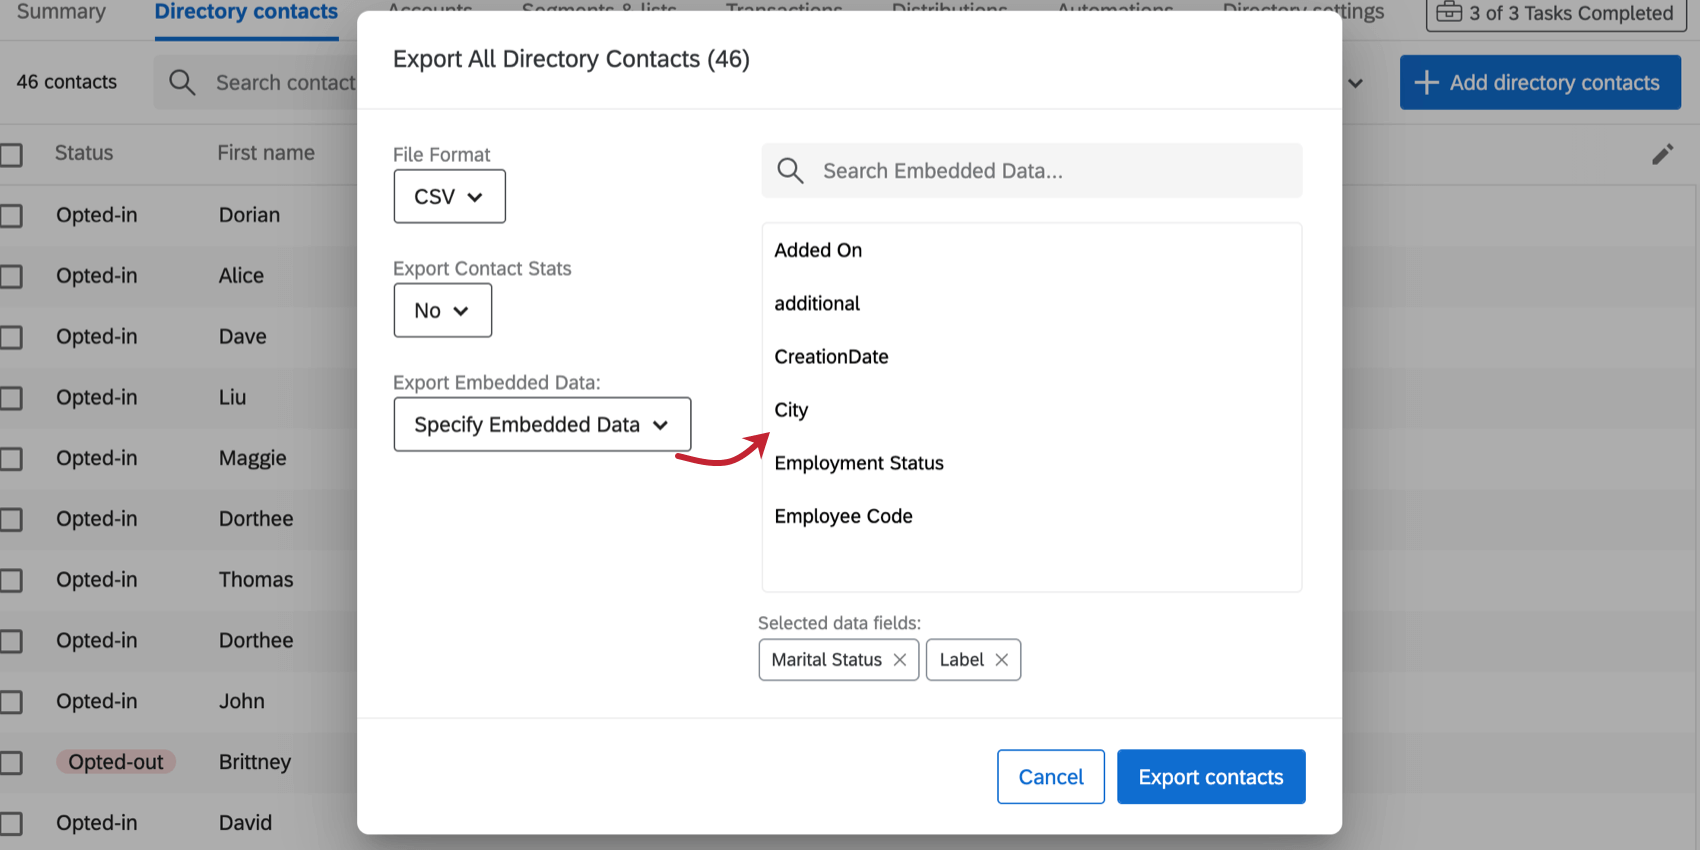 Specify Embedded Data is selected and a box of selectable fields appears to the right